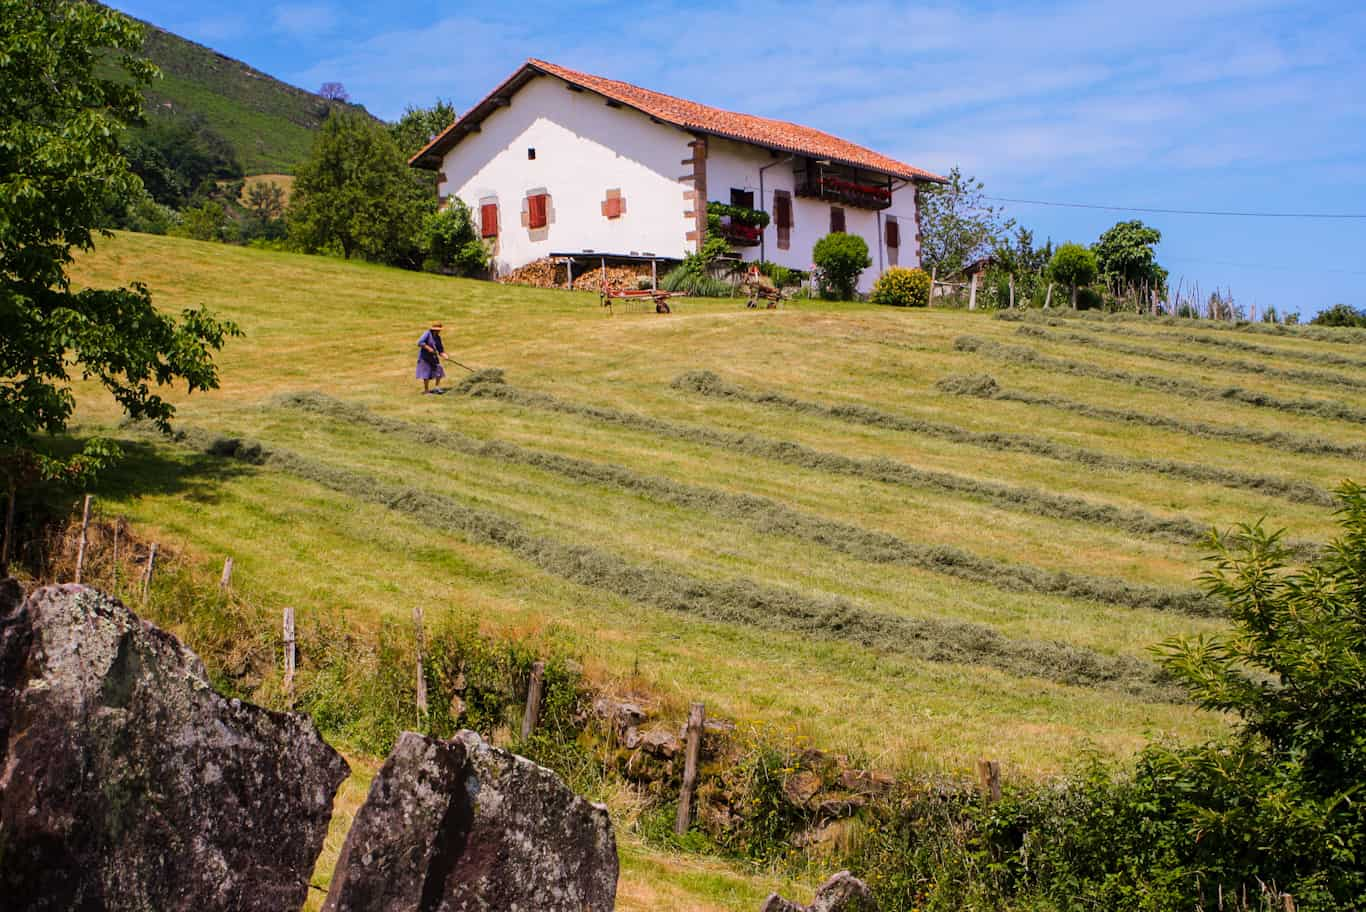 Making Hay in the Baztan Valley